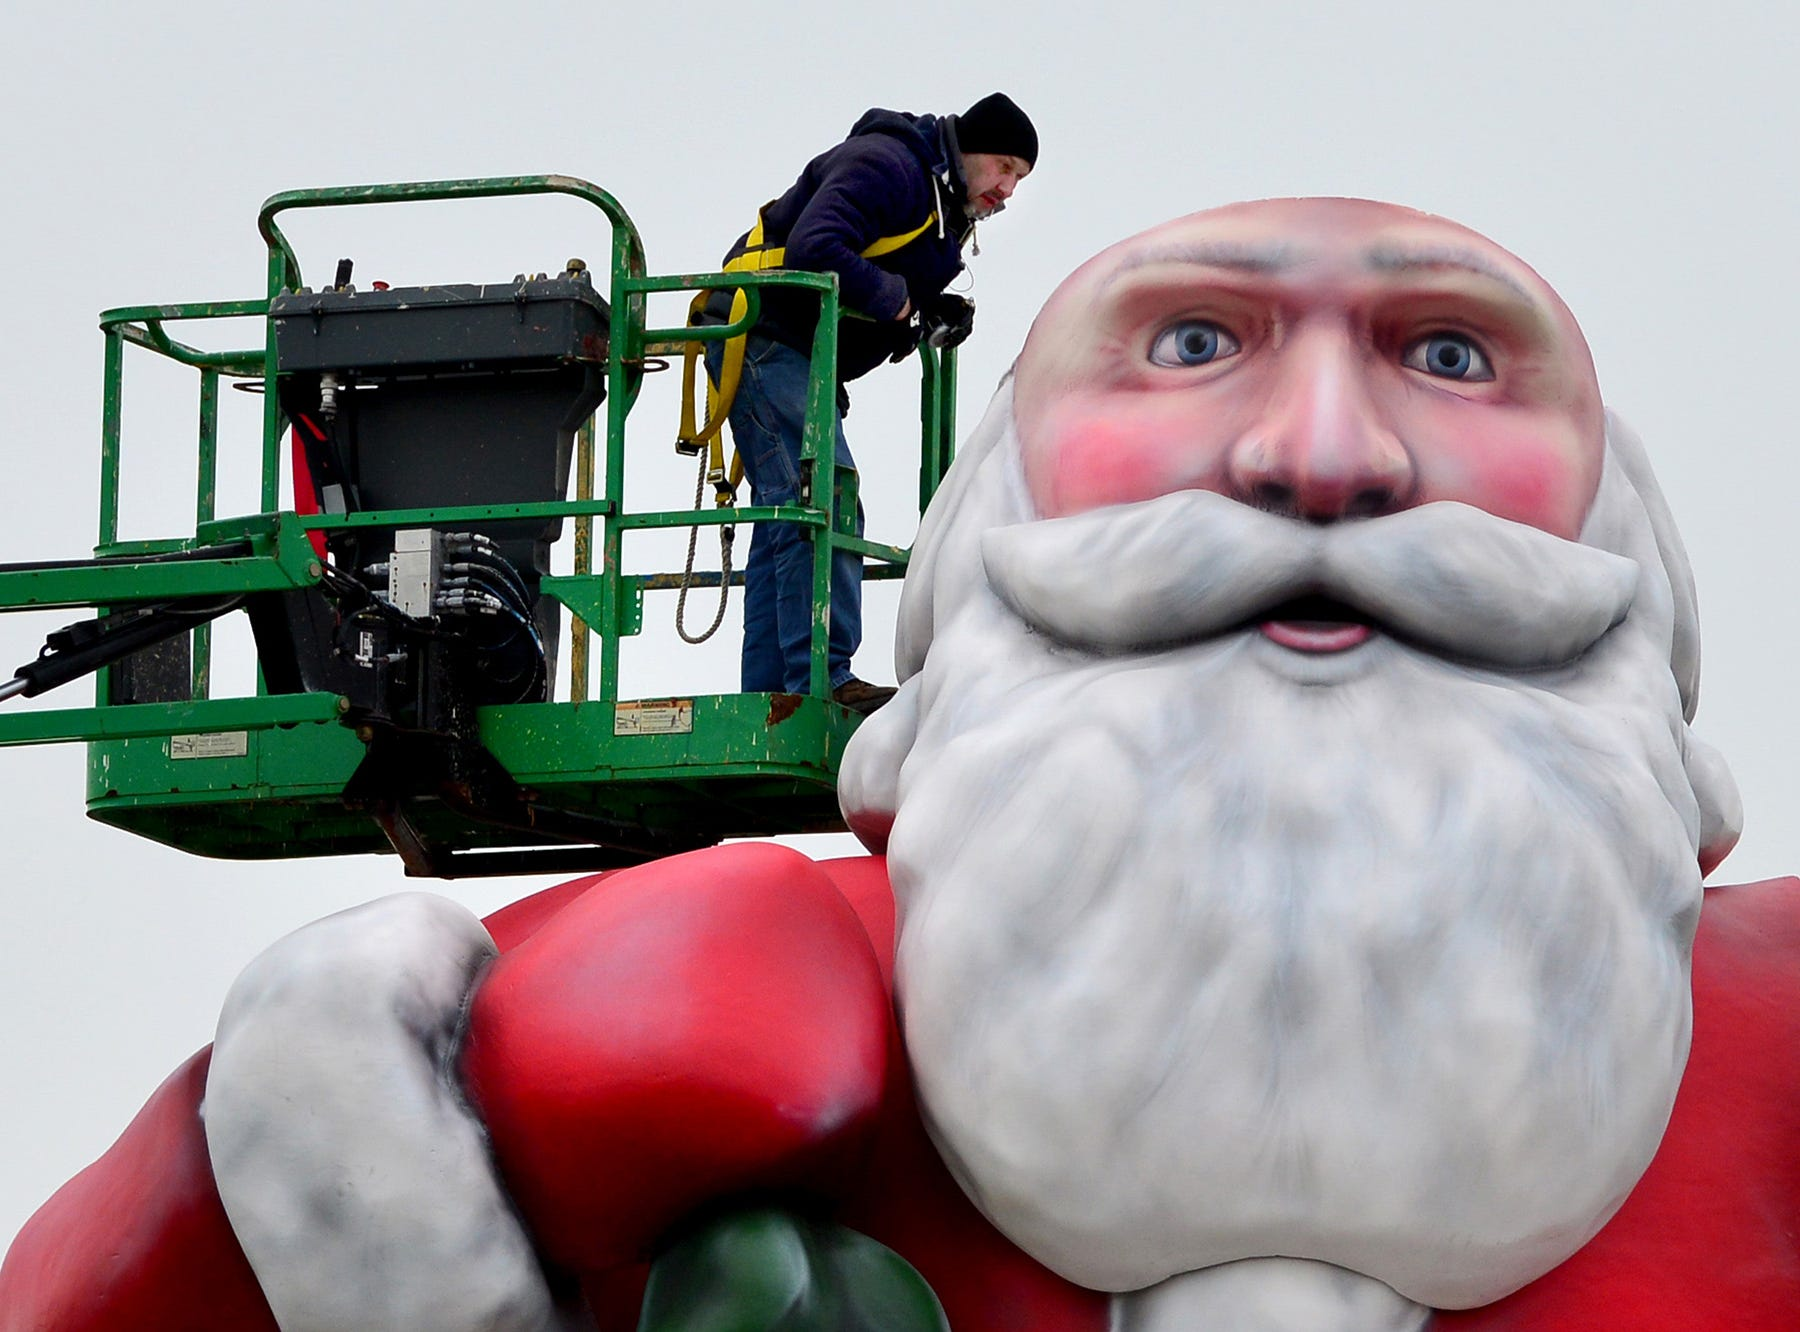 Installation of the giant Santa Clause continues at the Westfield Garden State Plaza in Paramus on Thursday morning November 15, 2018.